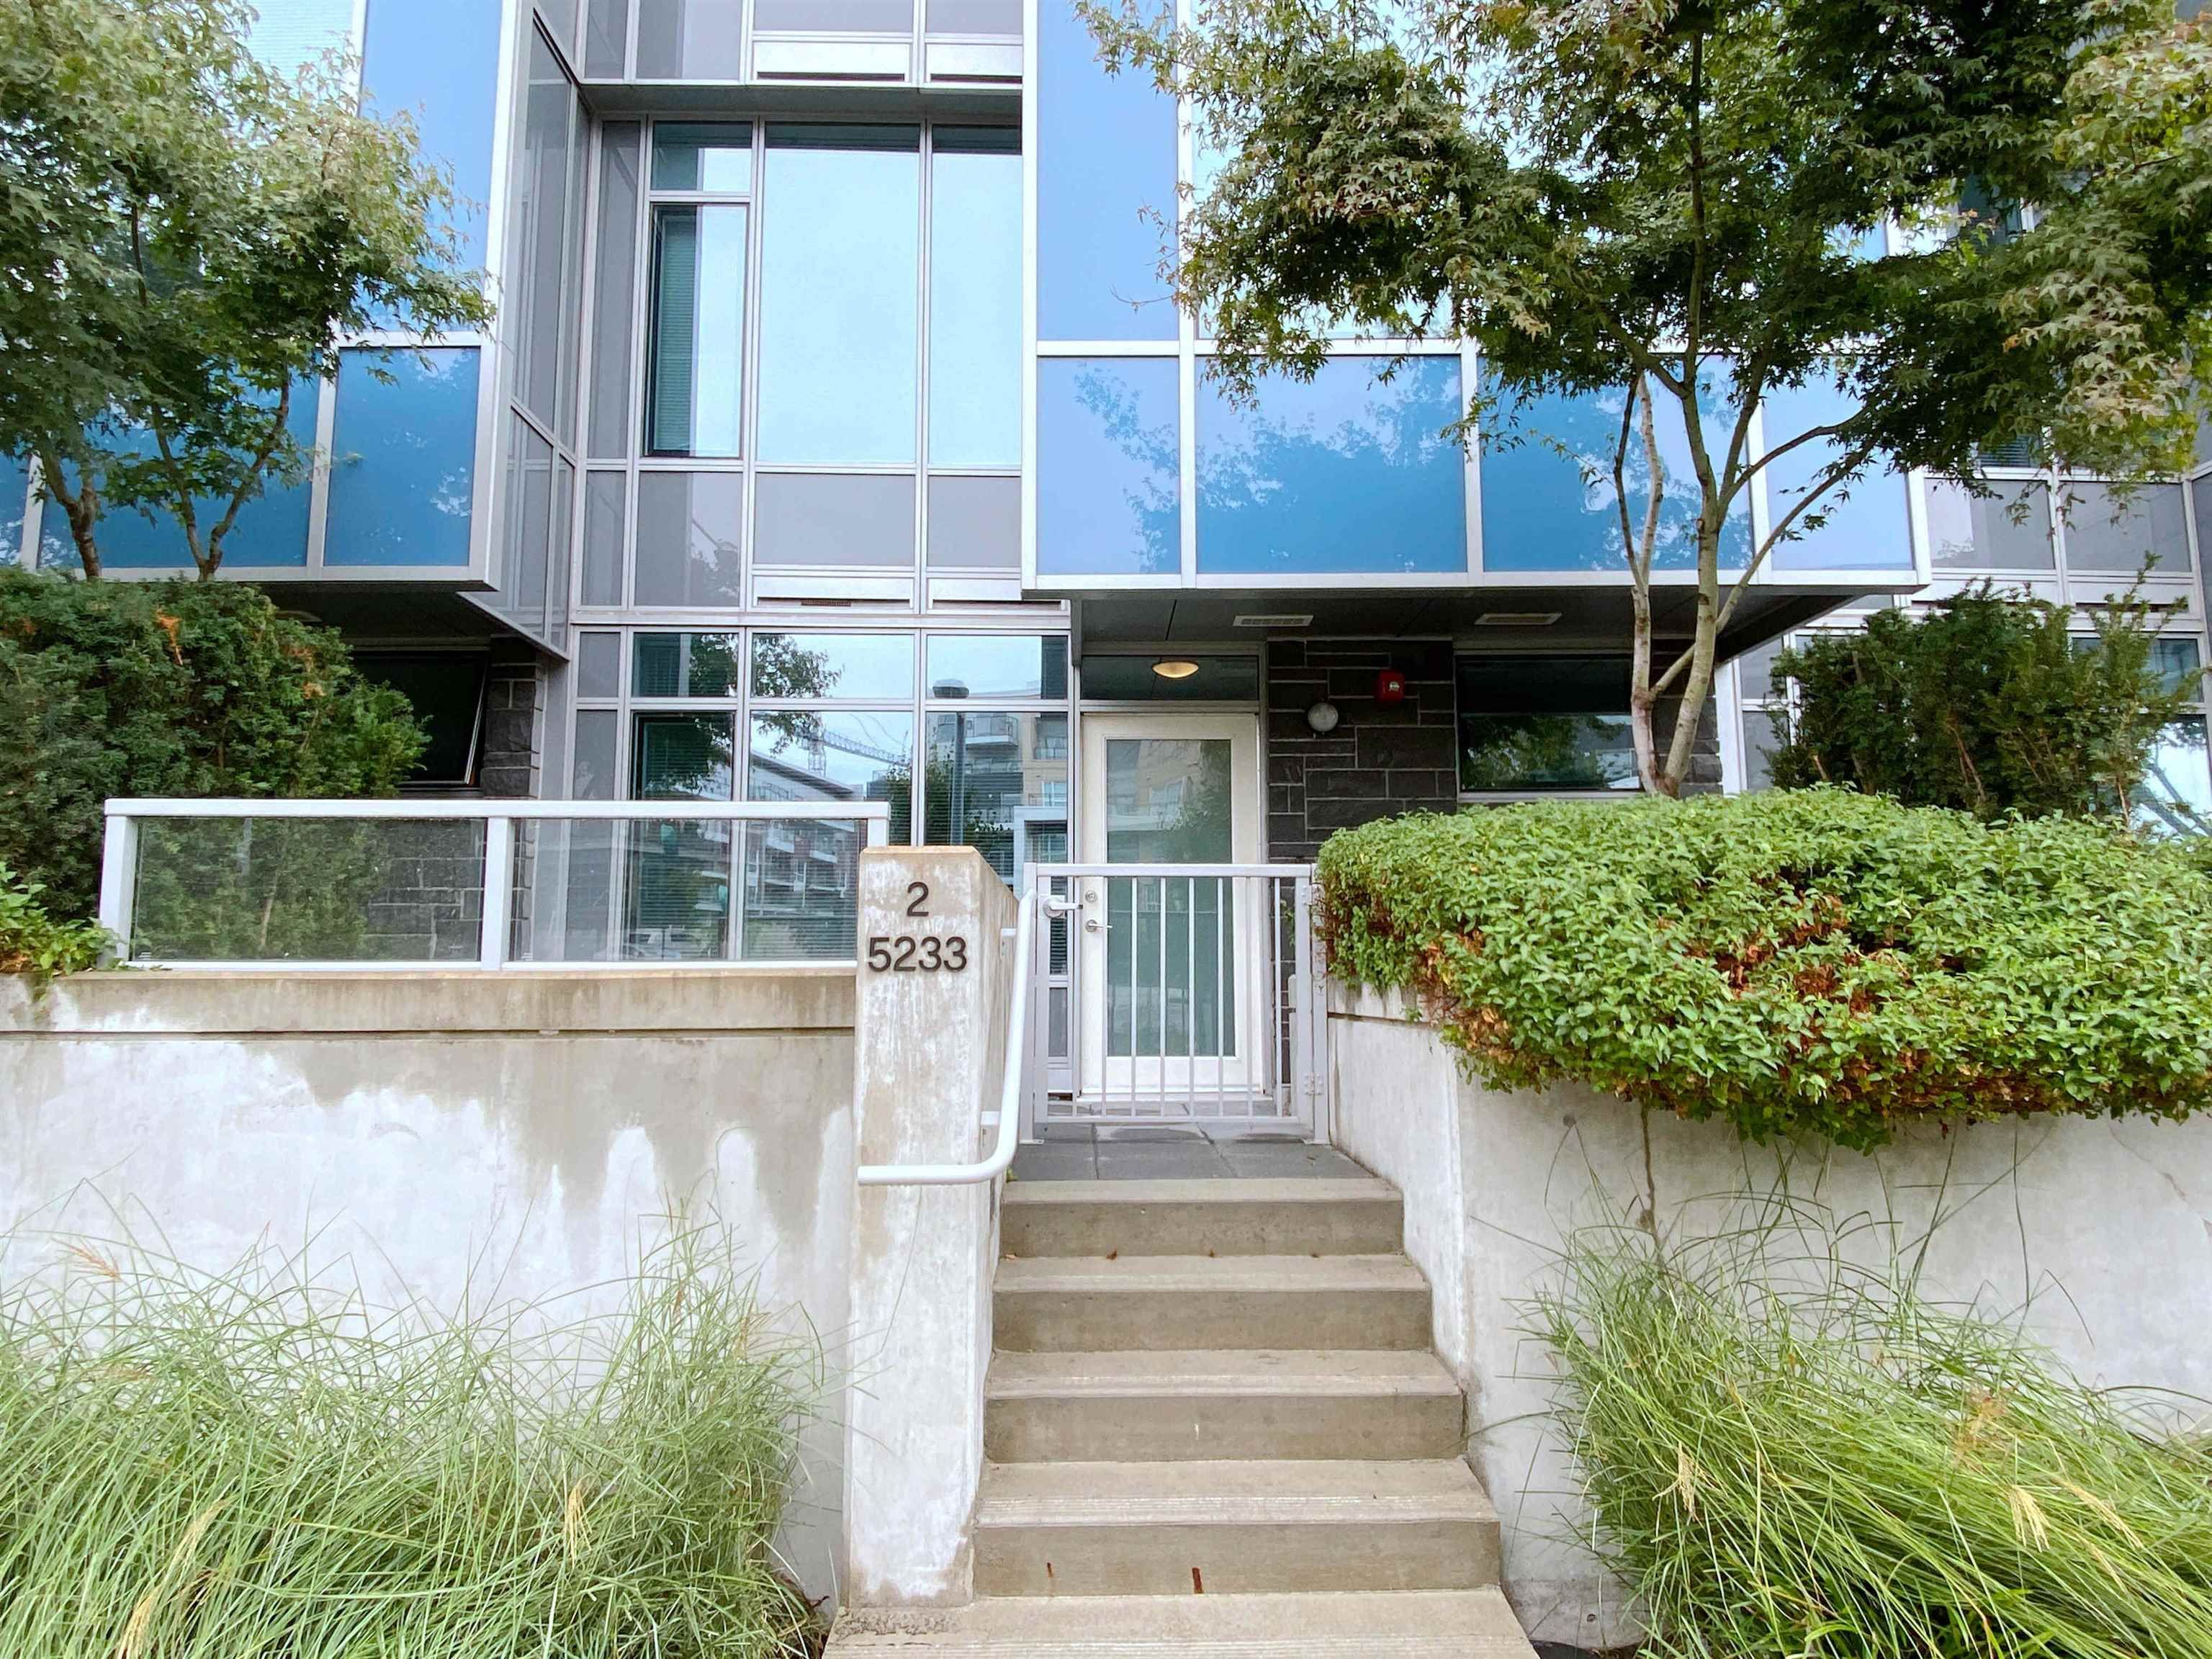 """Main Photo: 2 5233 GILBERT Road in Richmond: Brighouse Townhouse for sale in """"RIVER PARK PLACE I"""" : MLS®# R2614712"""